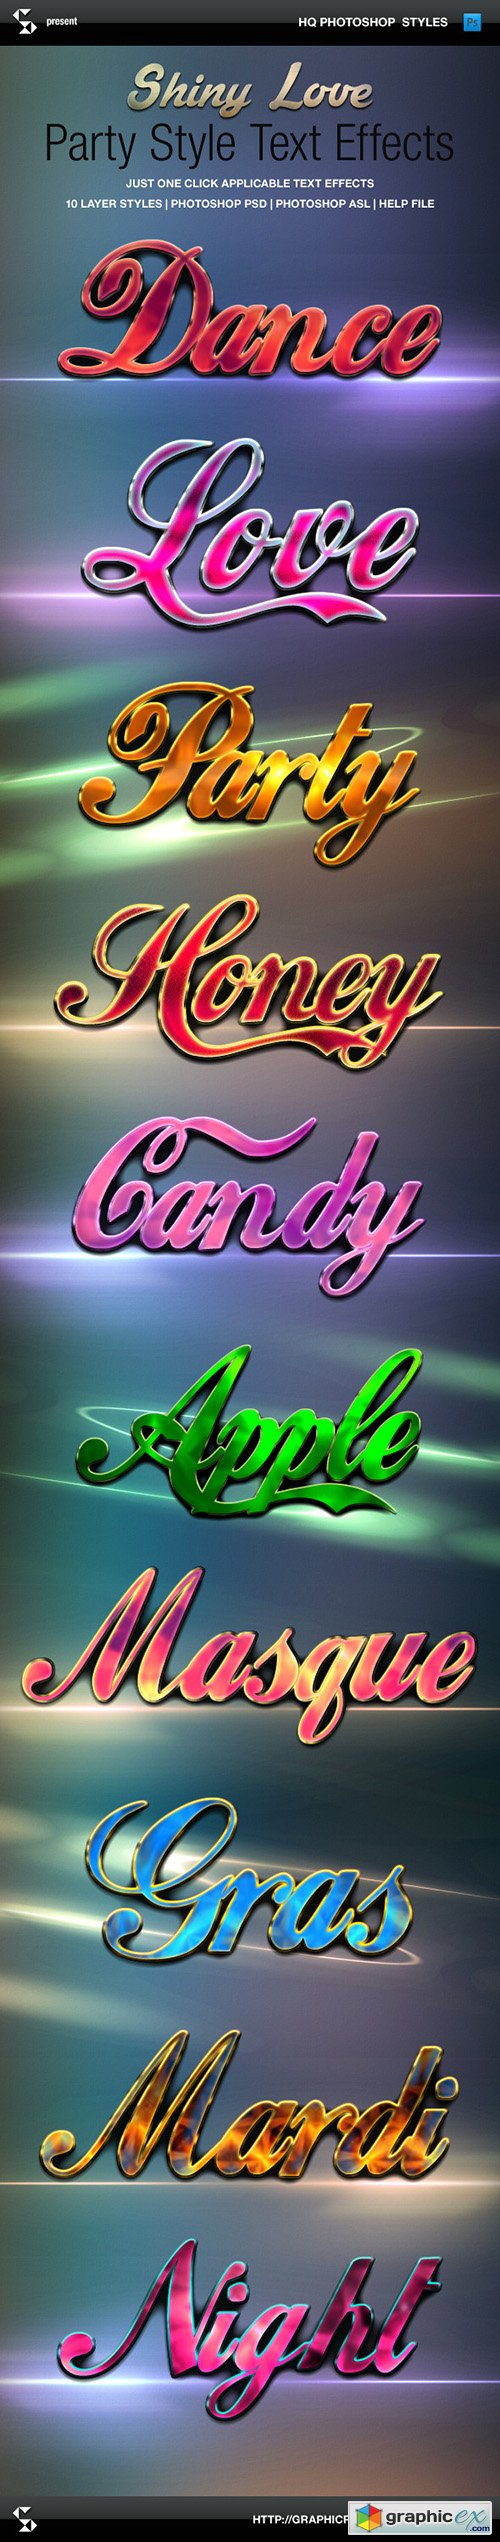 Graphicriver - Shiny Love Party Style Text Effects 10027902